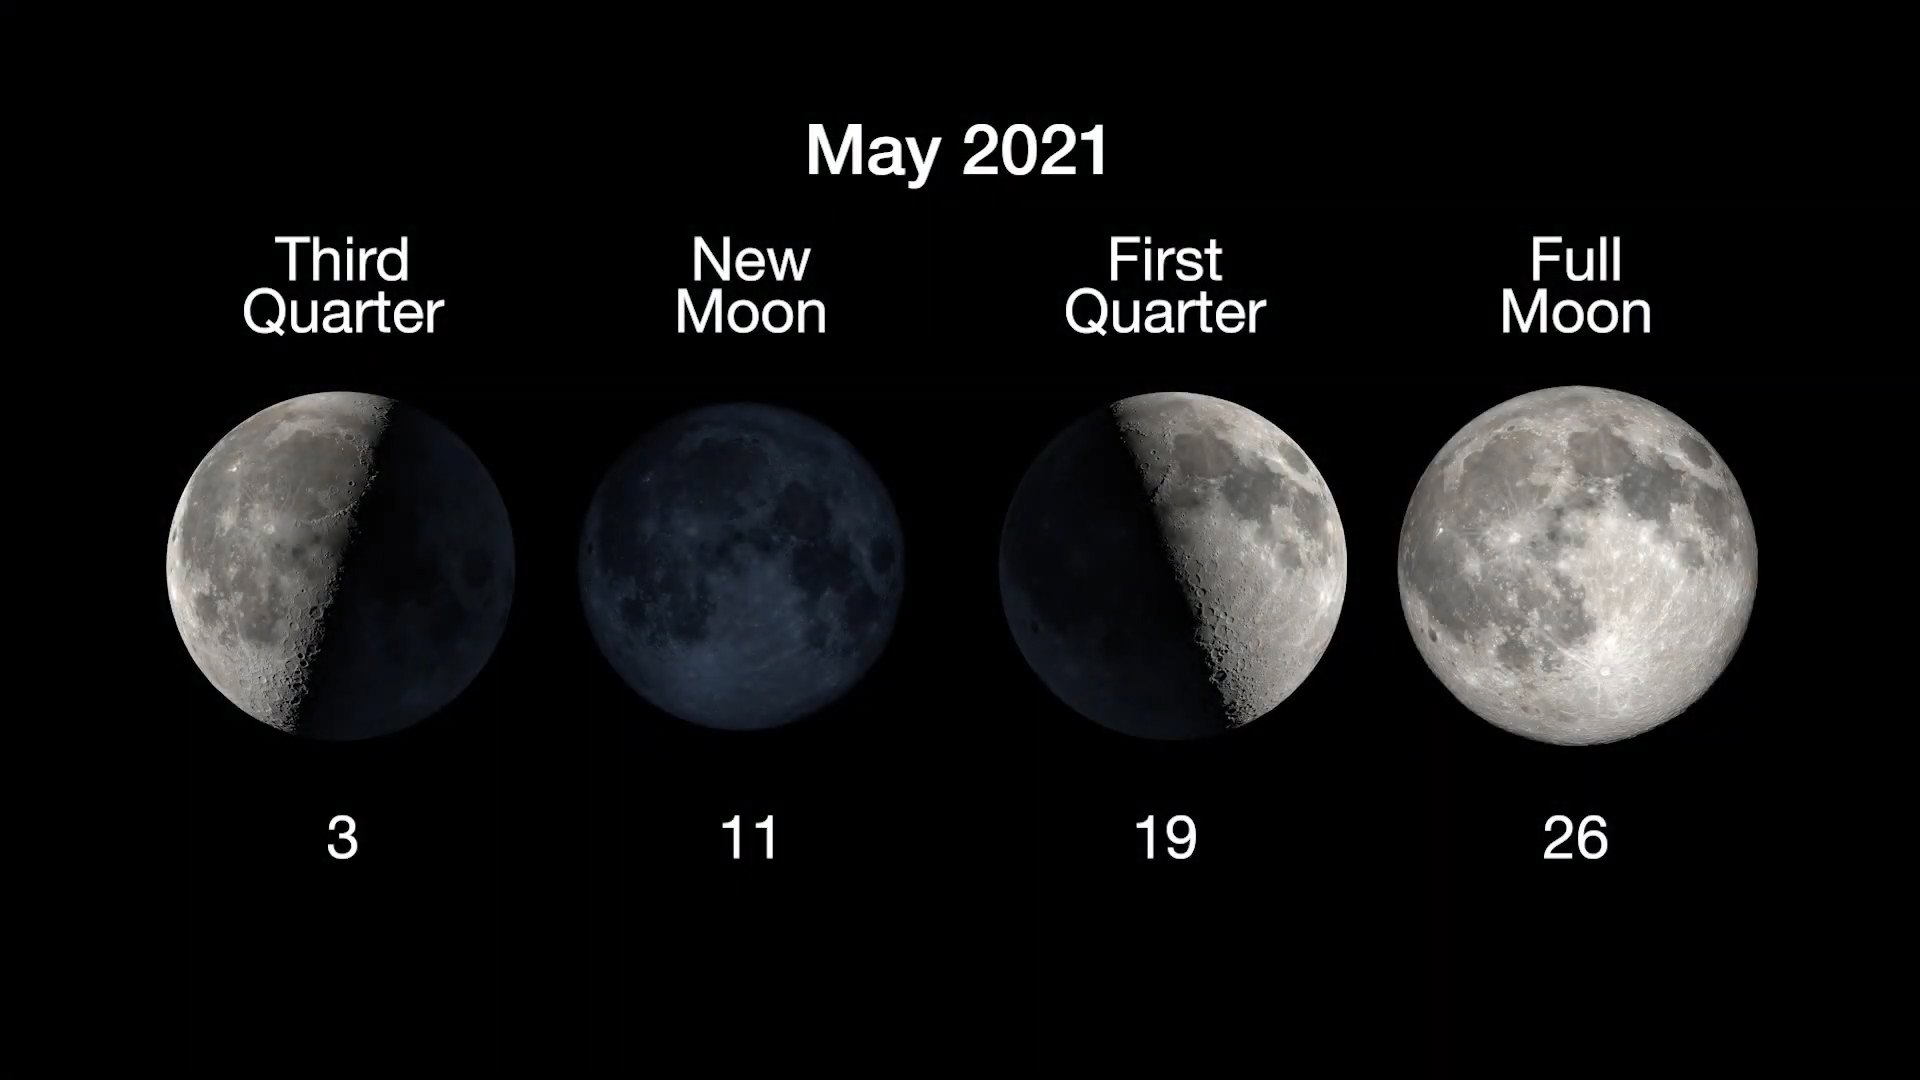 MoonPhases_May2021.jpg